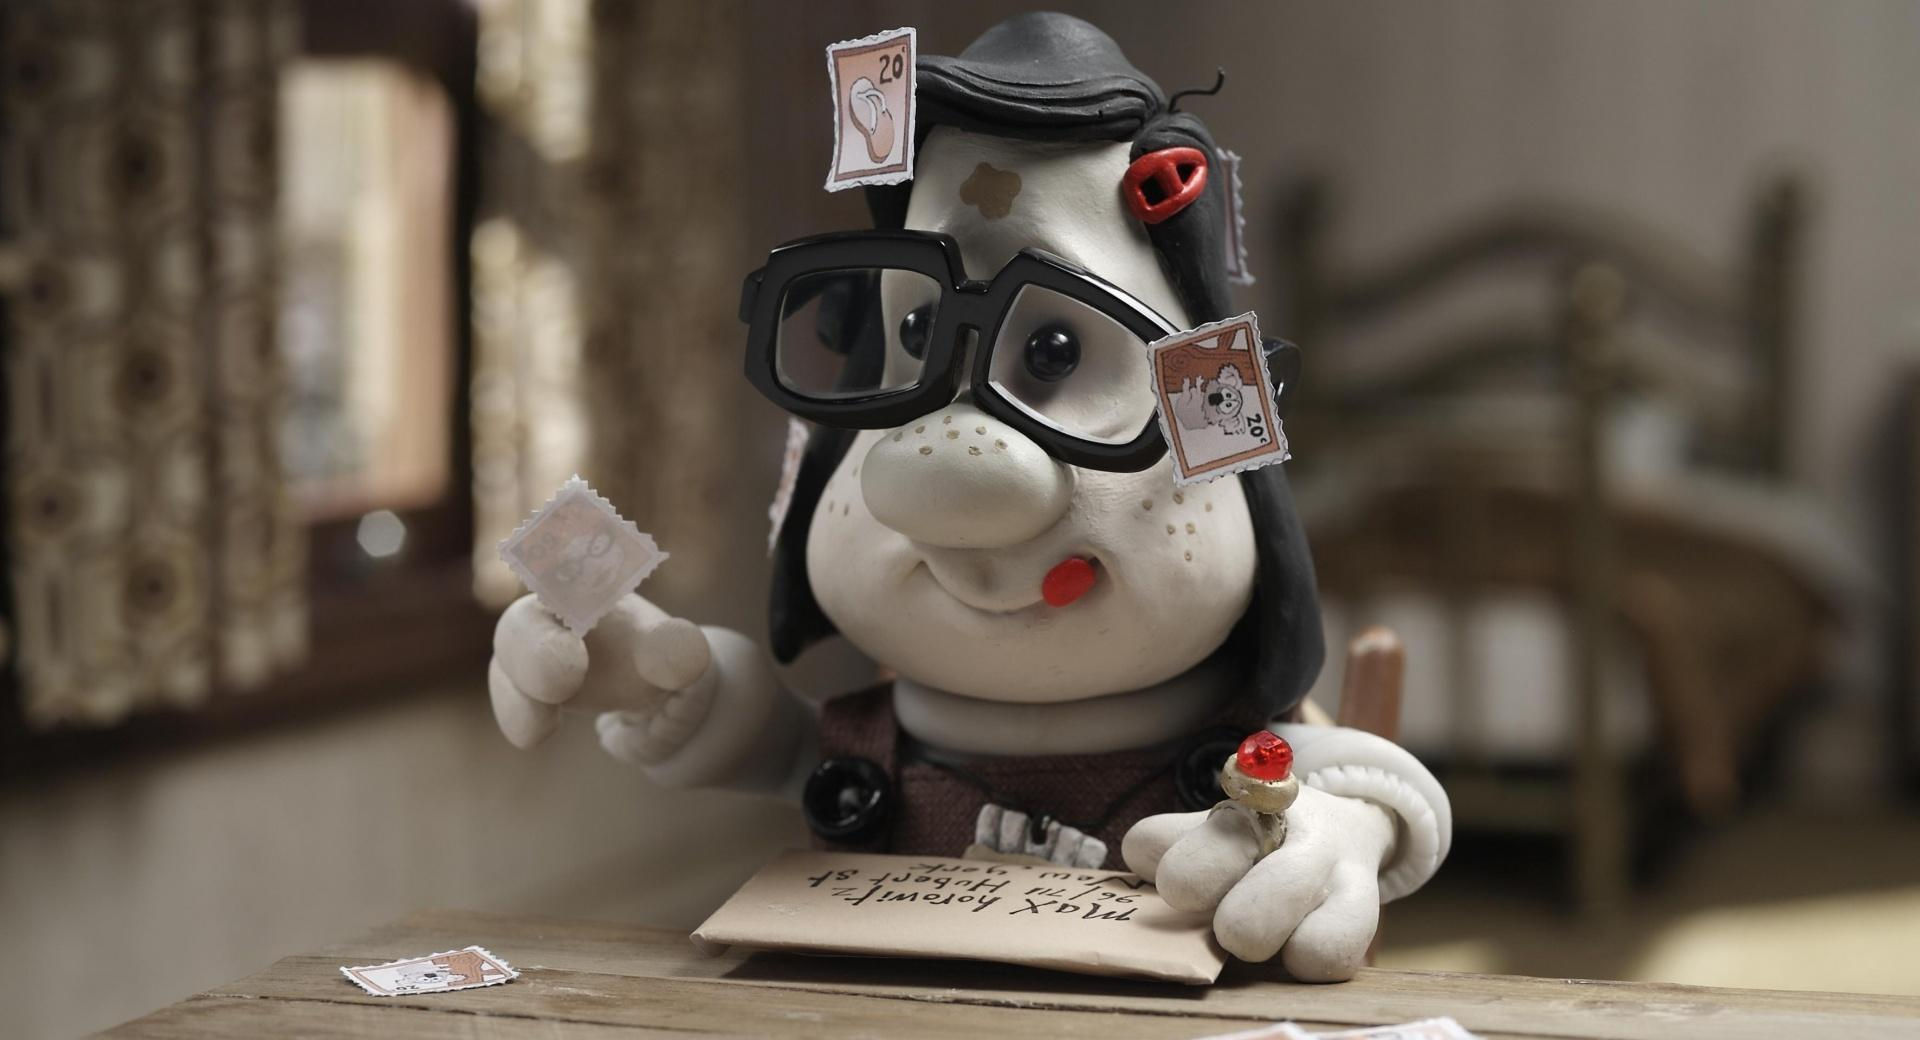 Mary And Max Cartoon wallpapers HD quality